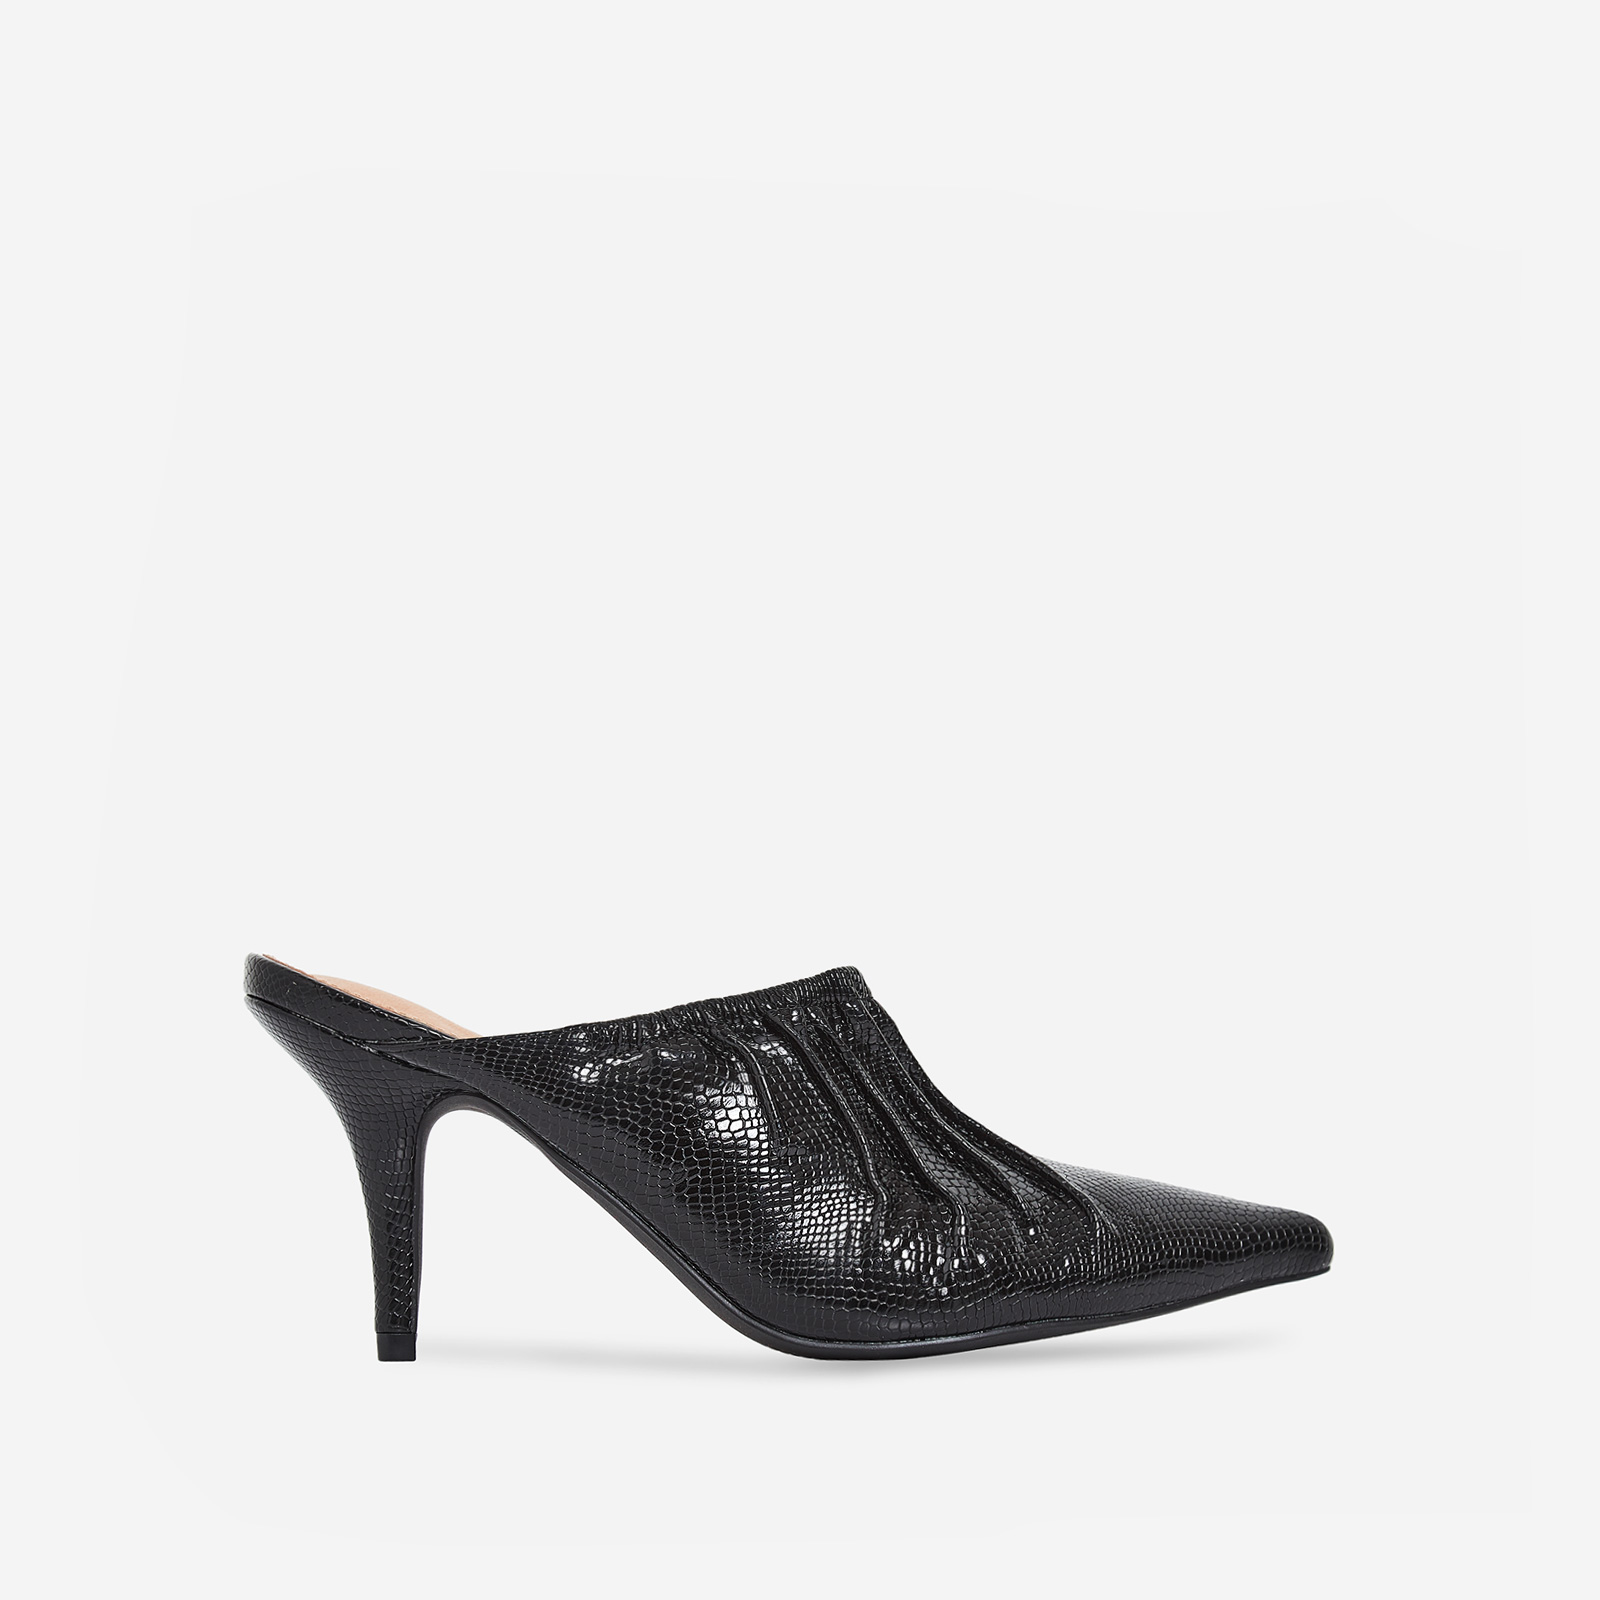 Kenza Pointed Heel Mule In Black Snake Print Patent